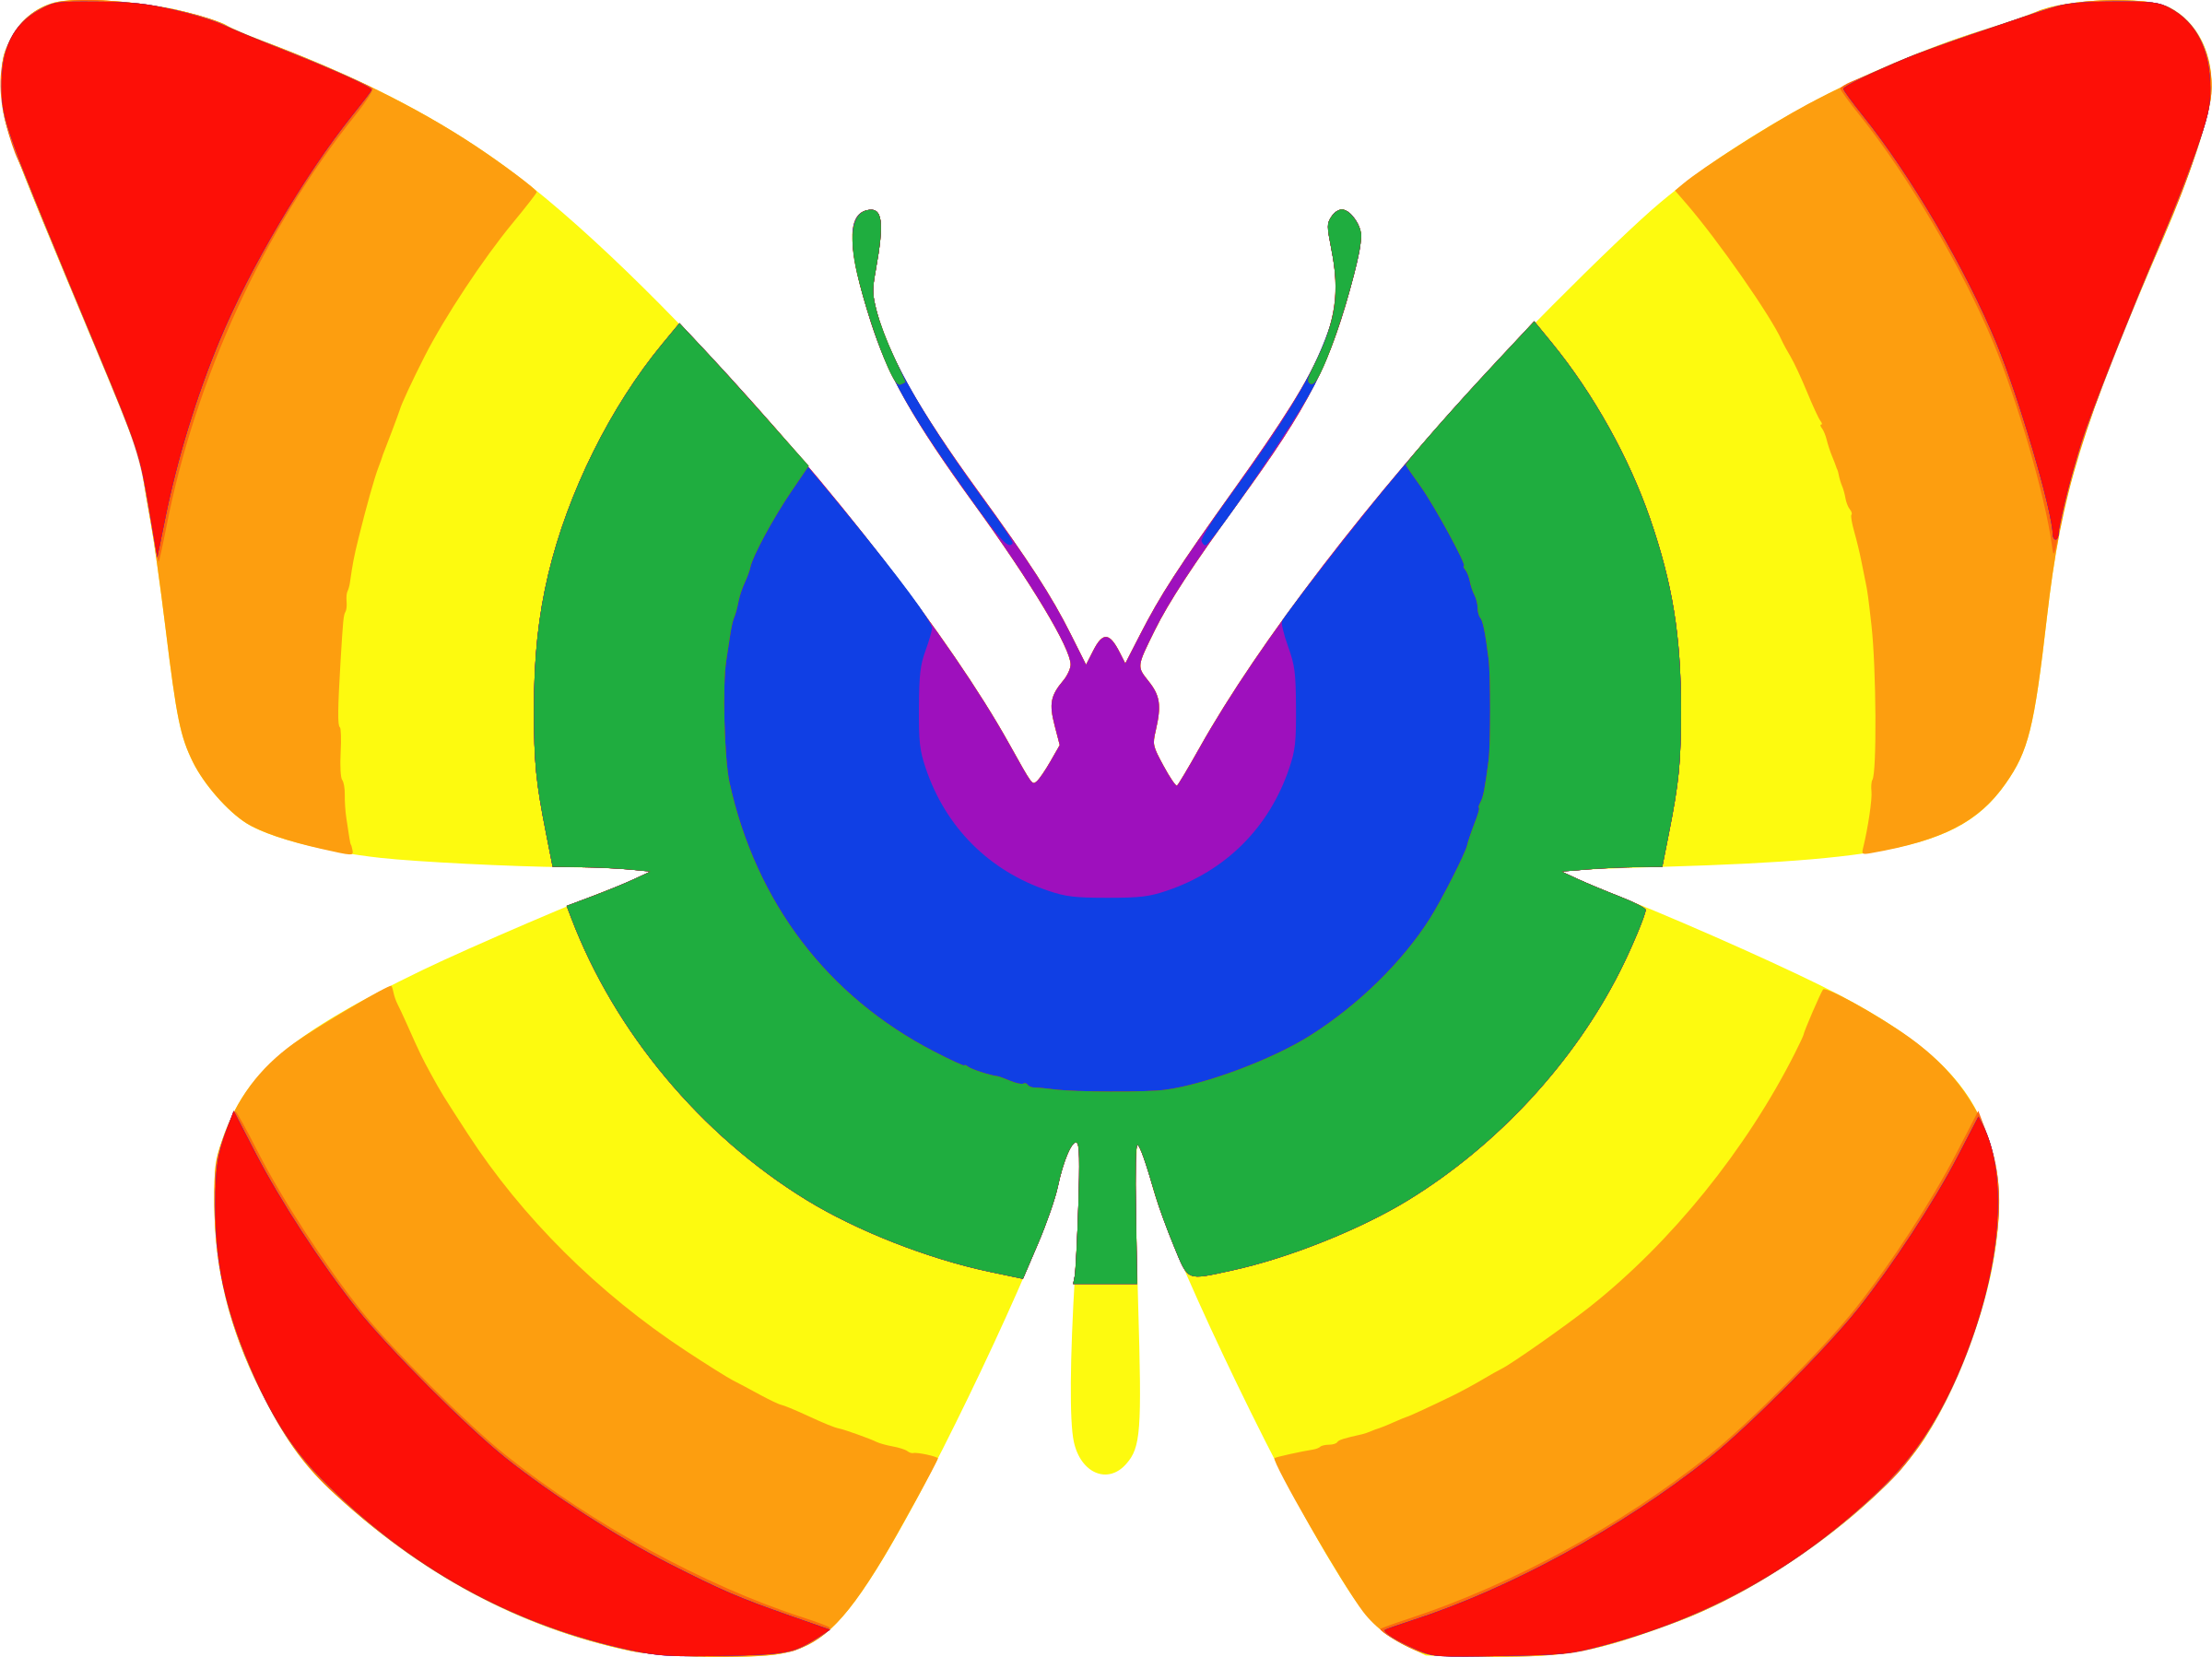 Rainbow butterfly frames illustrations. Frogs clipart symmetrical